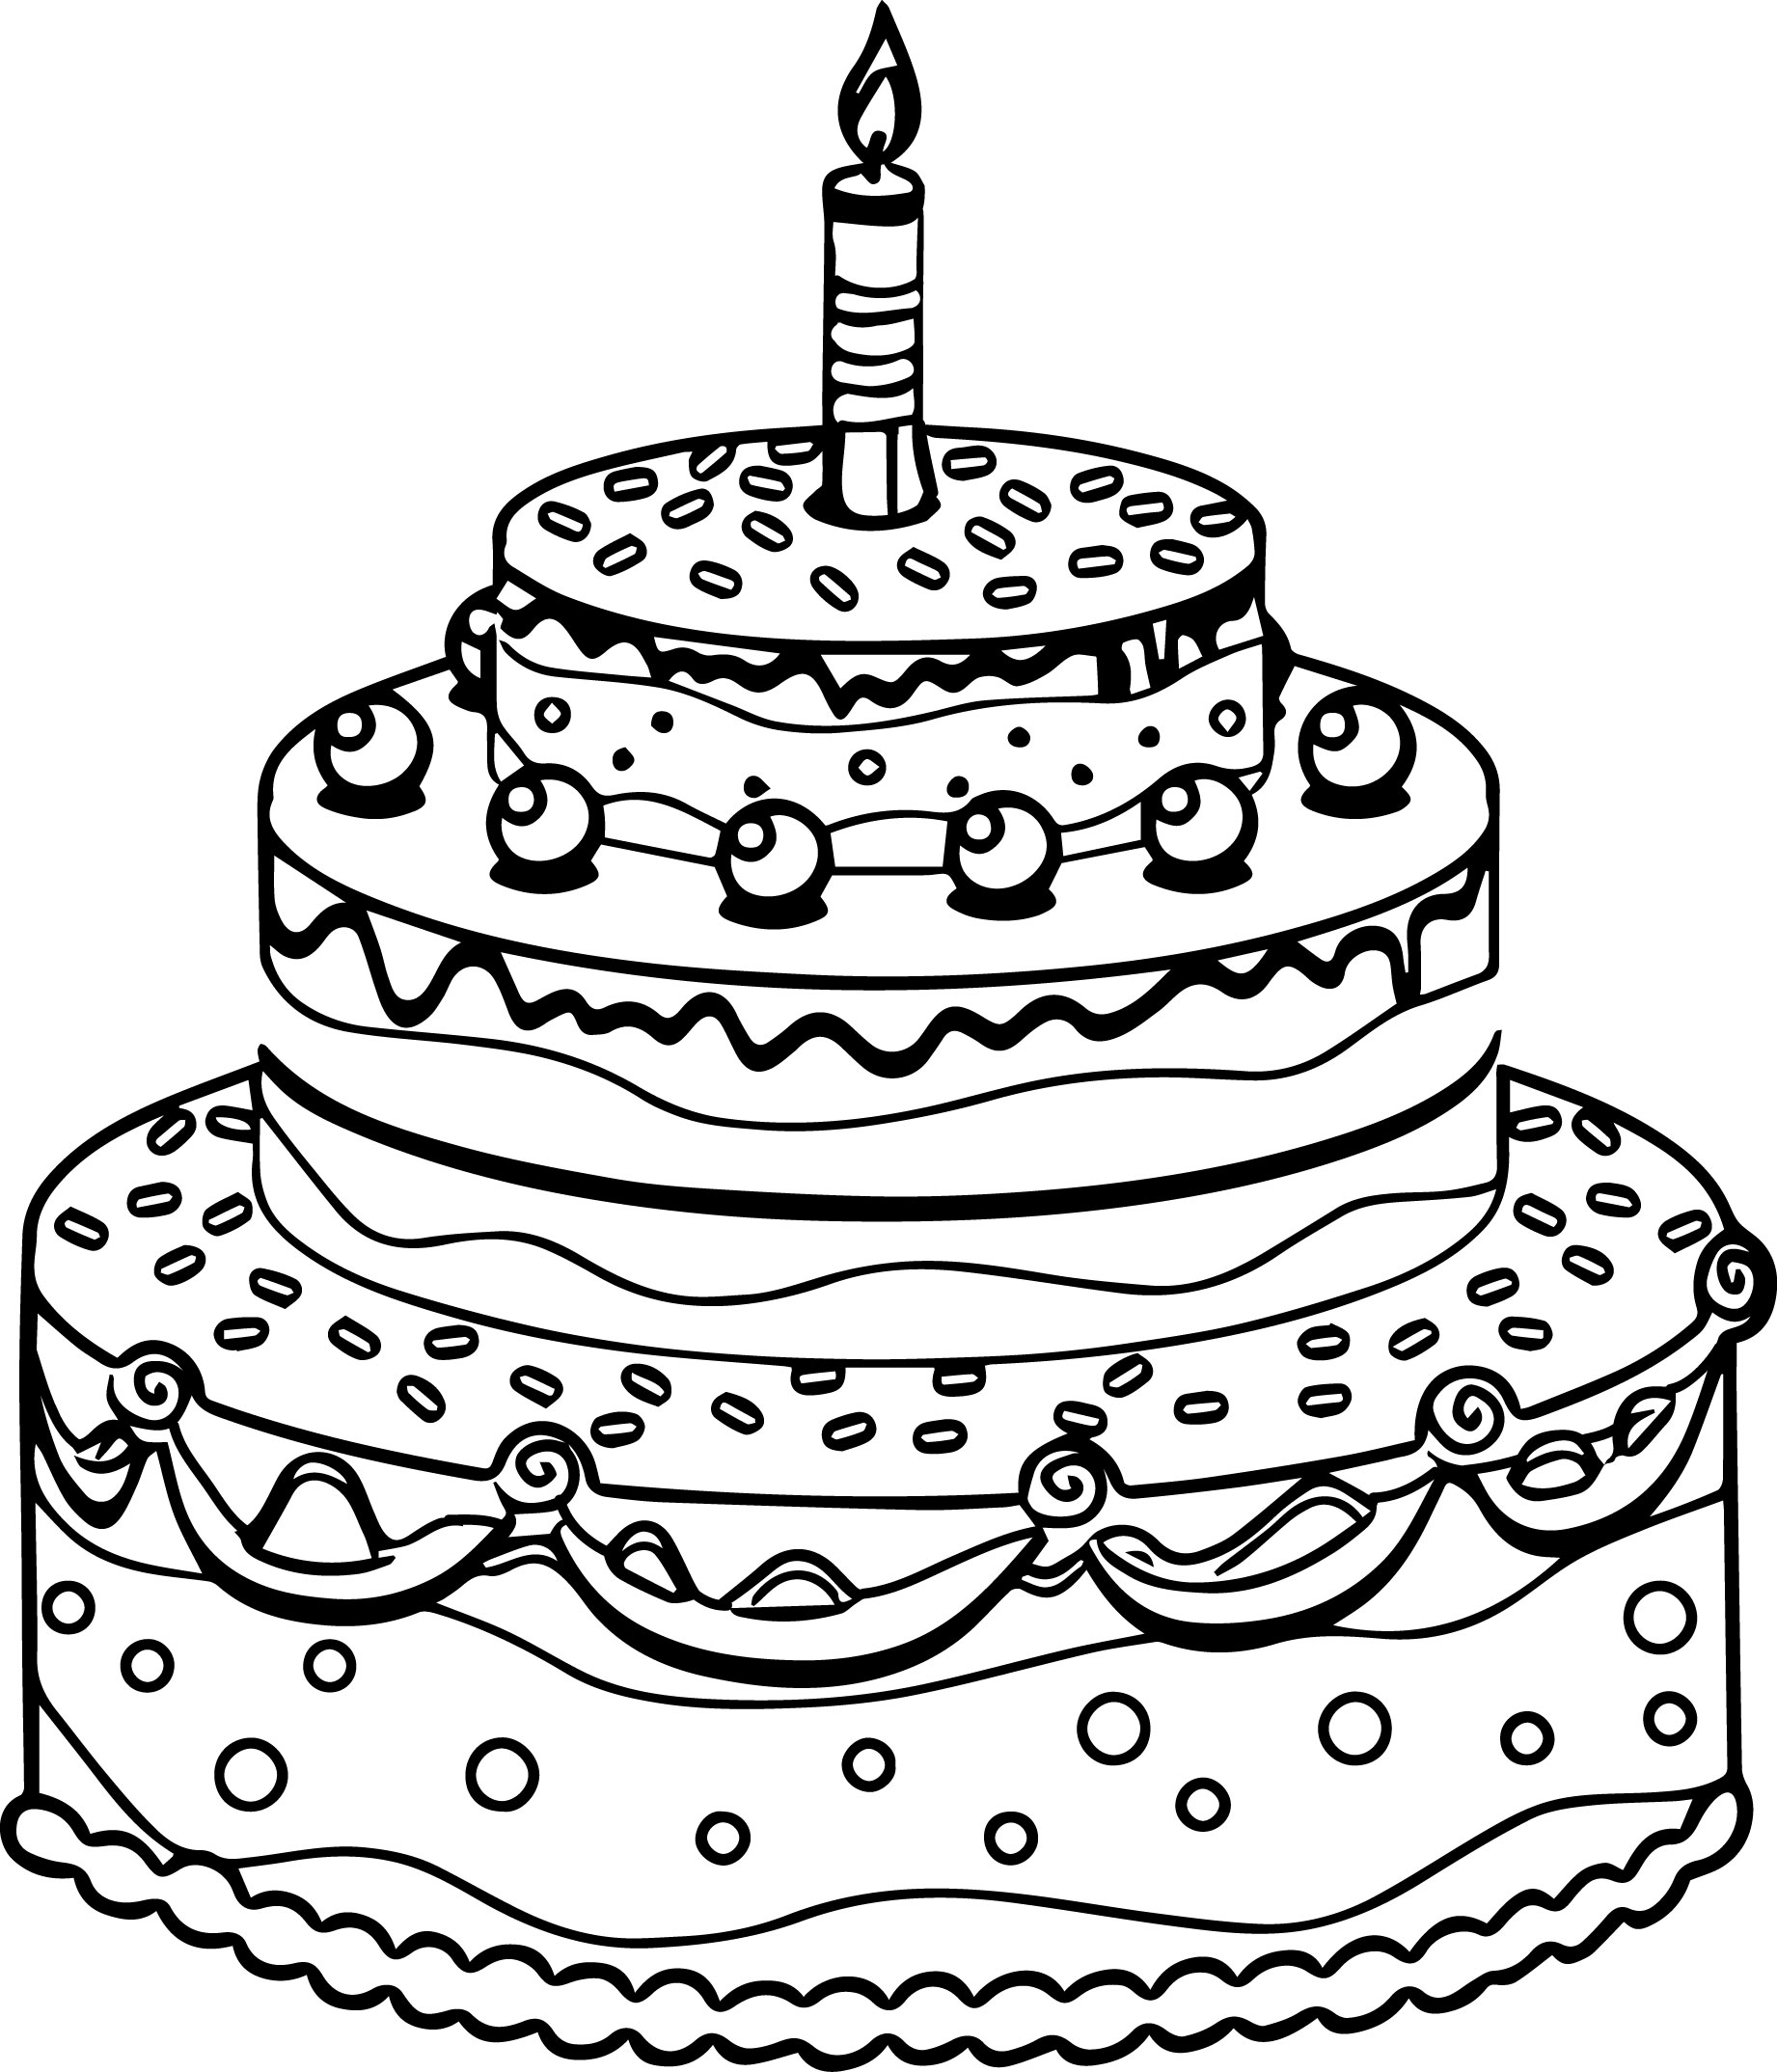 coloring book birthday cake ; birthday-cake-coloring-pages-fresh-page-64-about-remodel-free-book-with